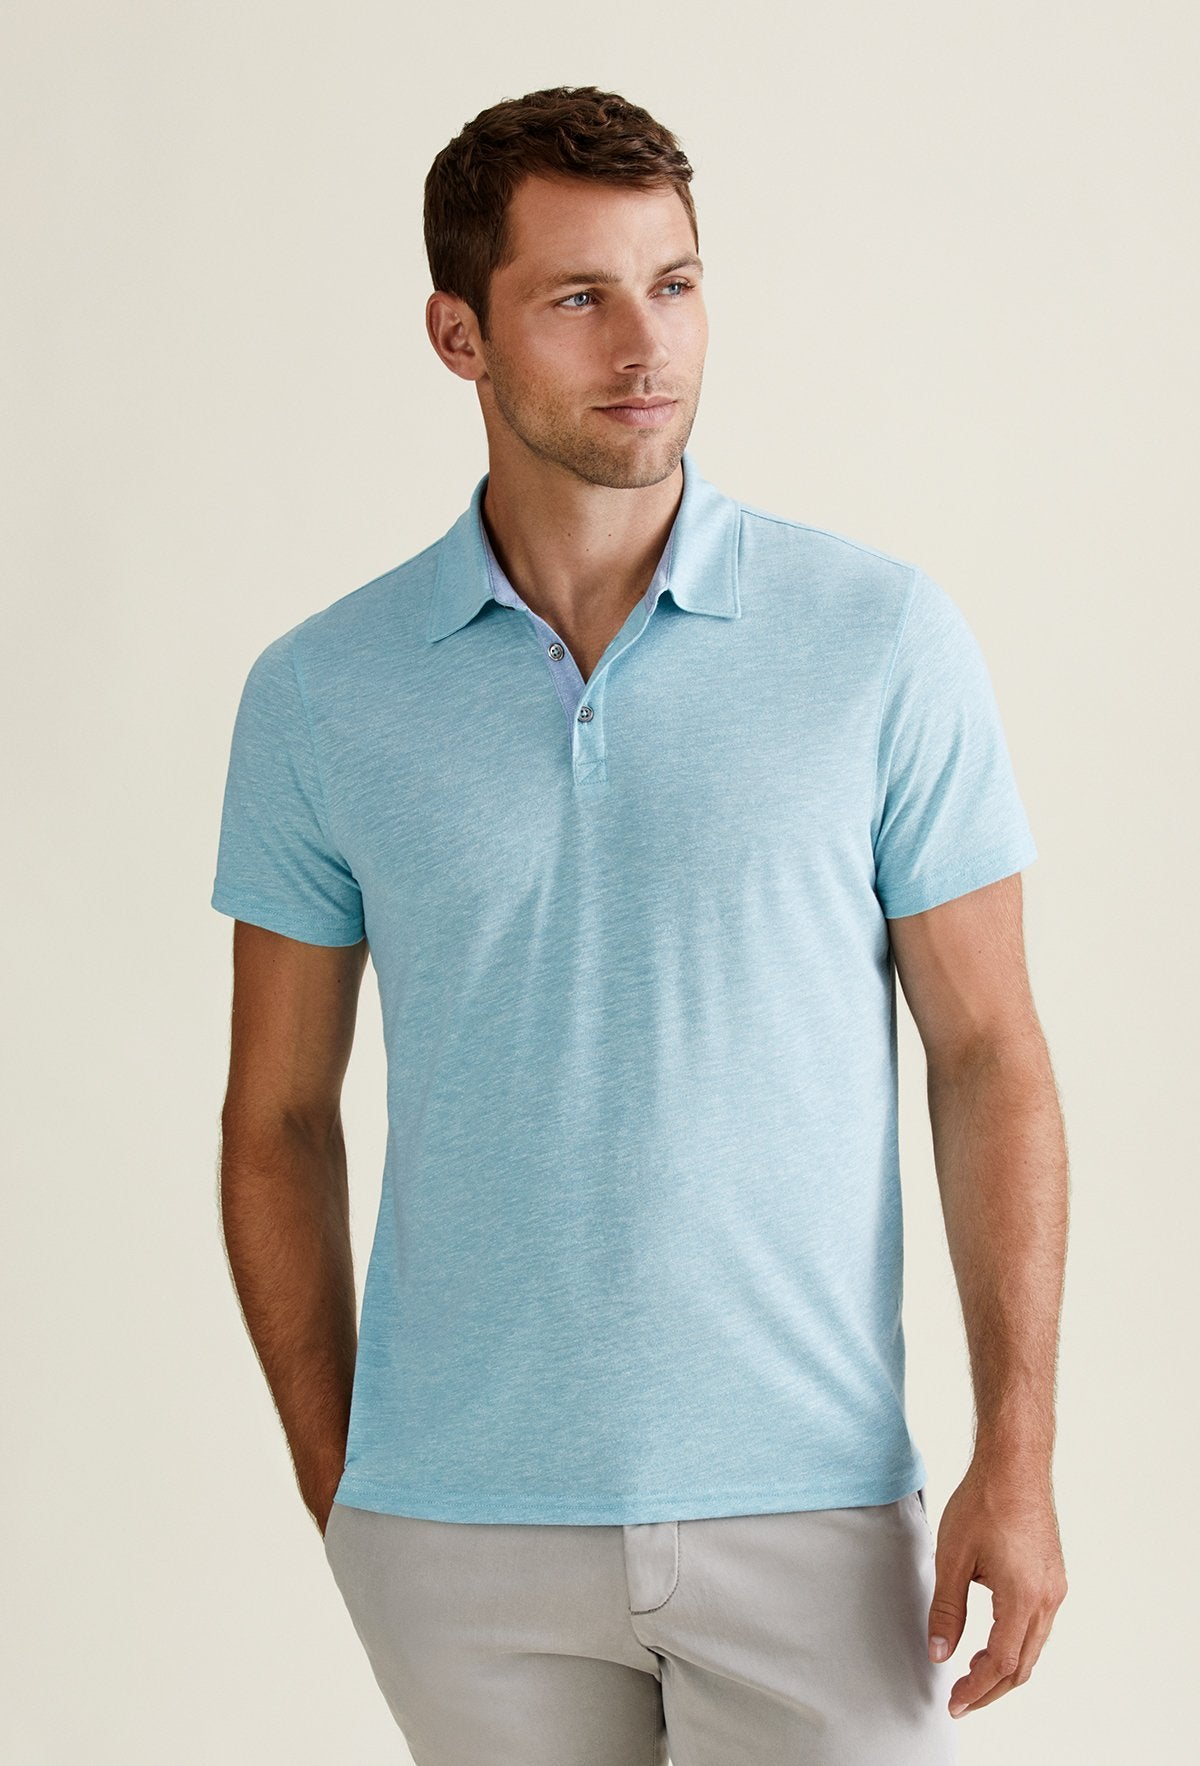 men's preppy polo shirts made from poly cotton blend. Aqua blue